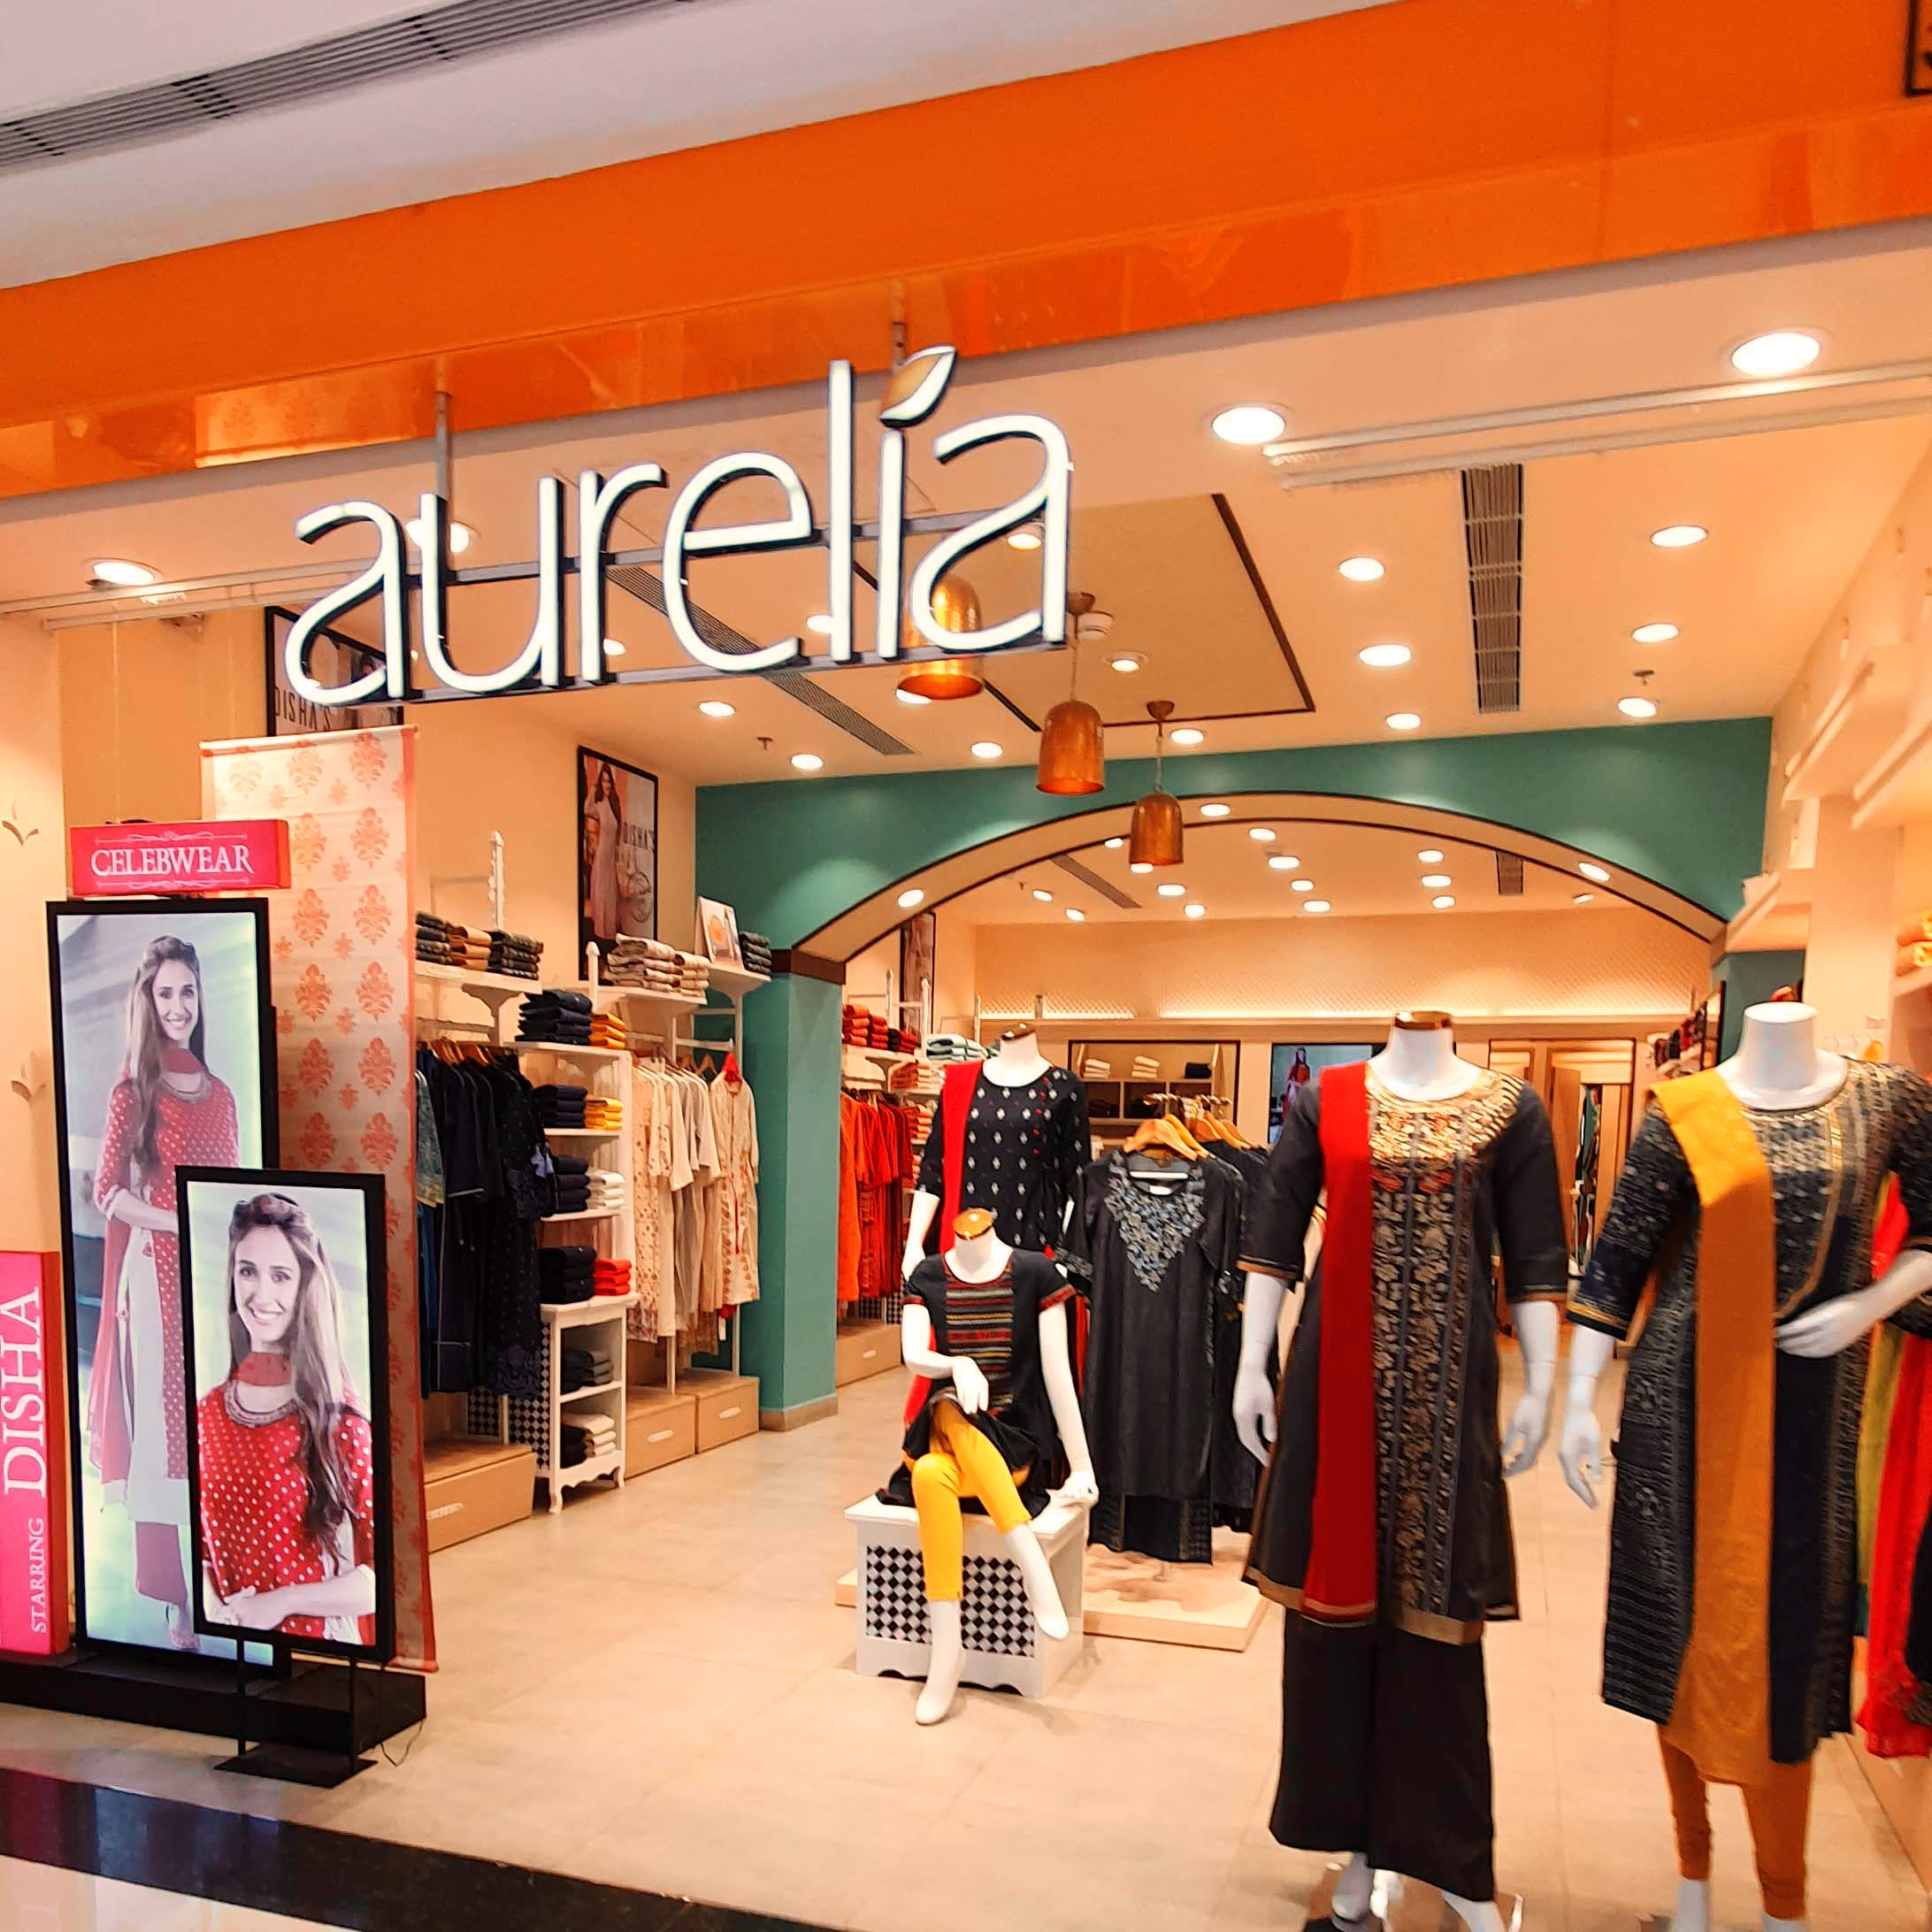 Boutique,Outlet store,Shopping mall,Building,Shopping,Fashion,Retail,Outerwear,Interior design,Display window